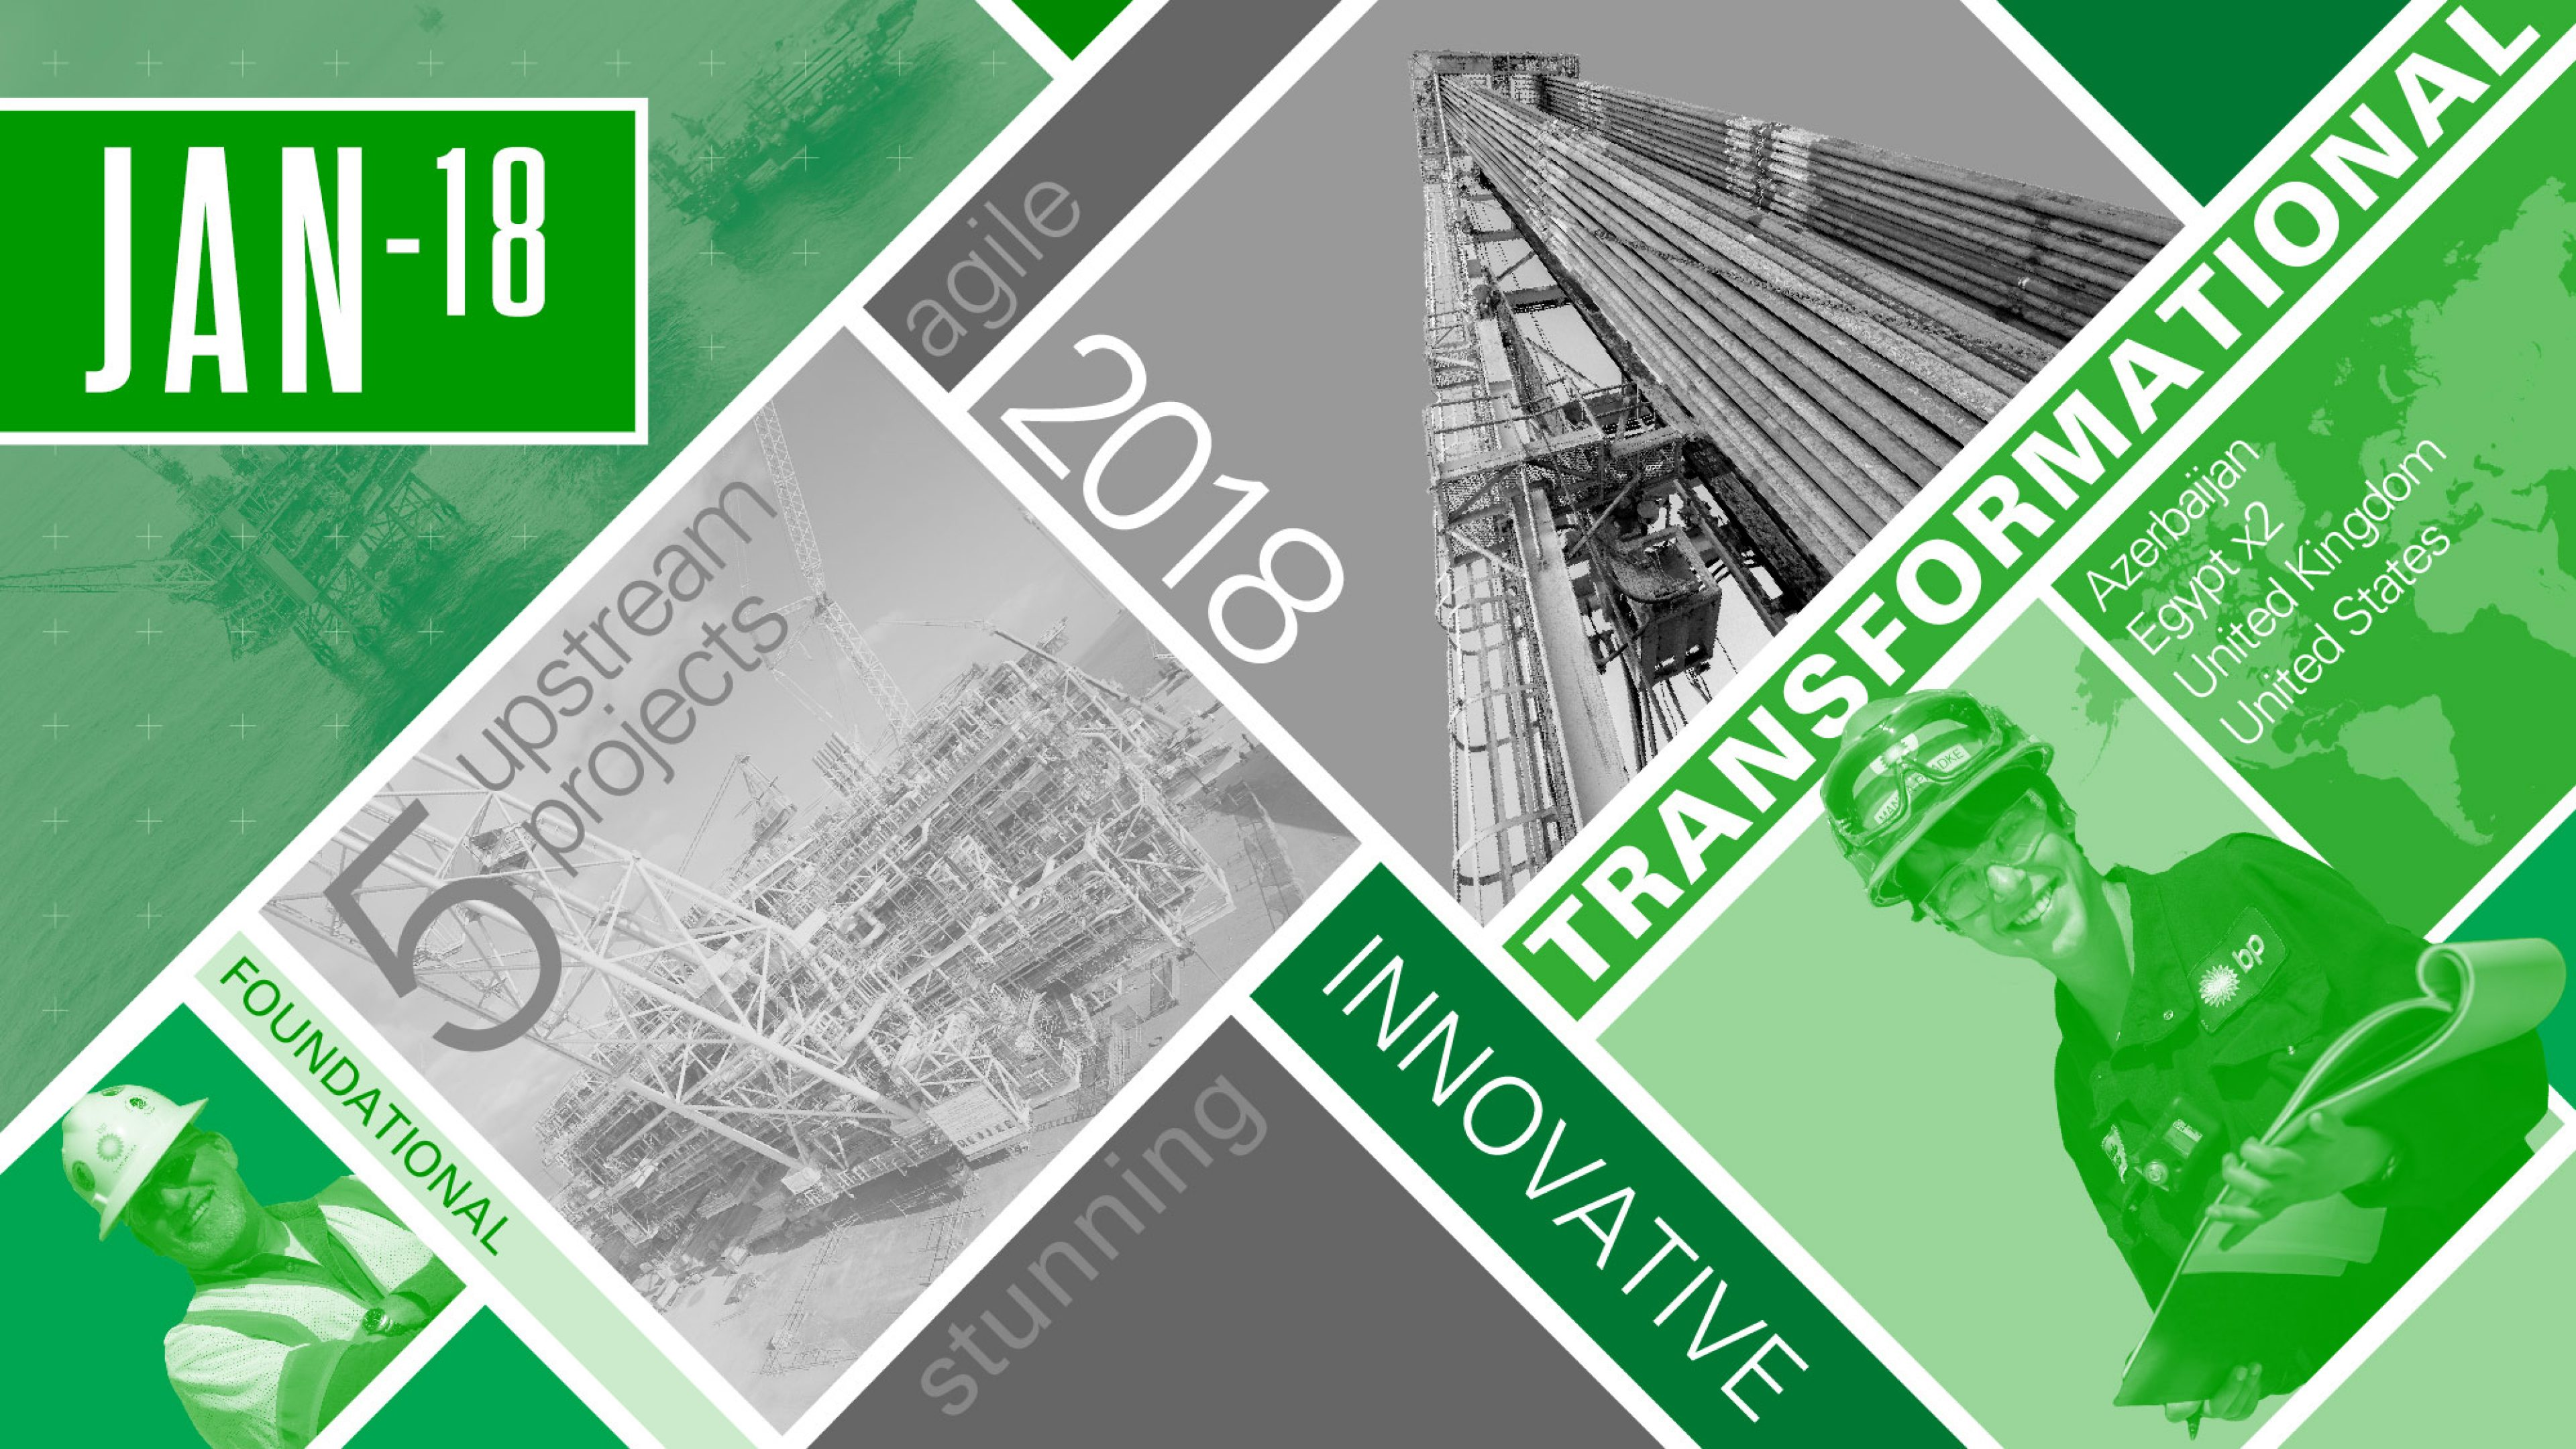 Graphic shows the one-word descriptions of BP's major projects in 2018